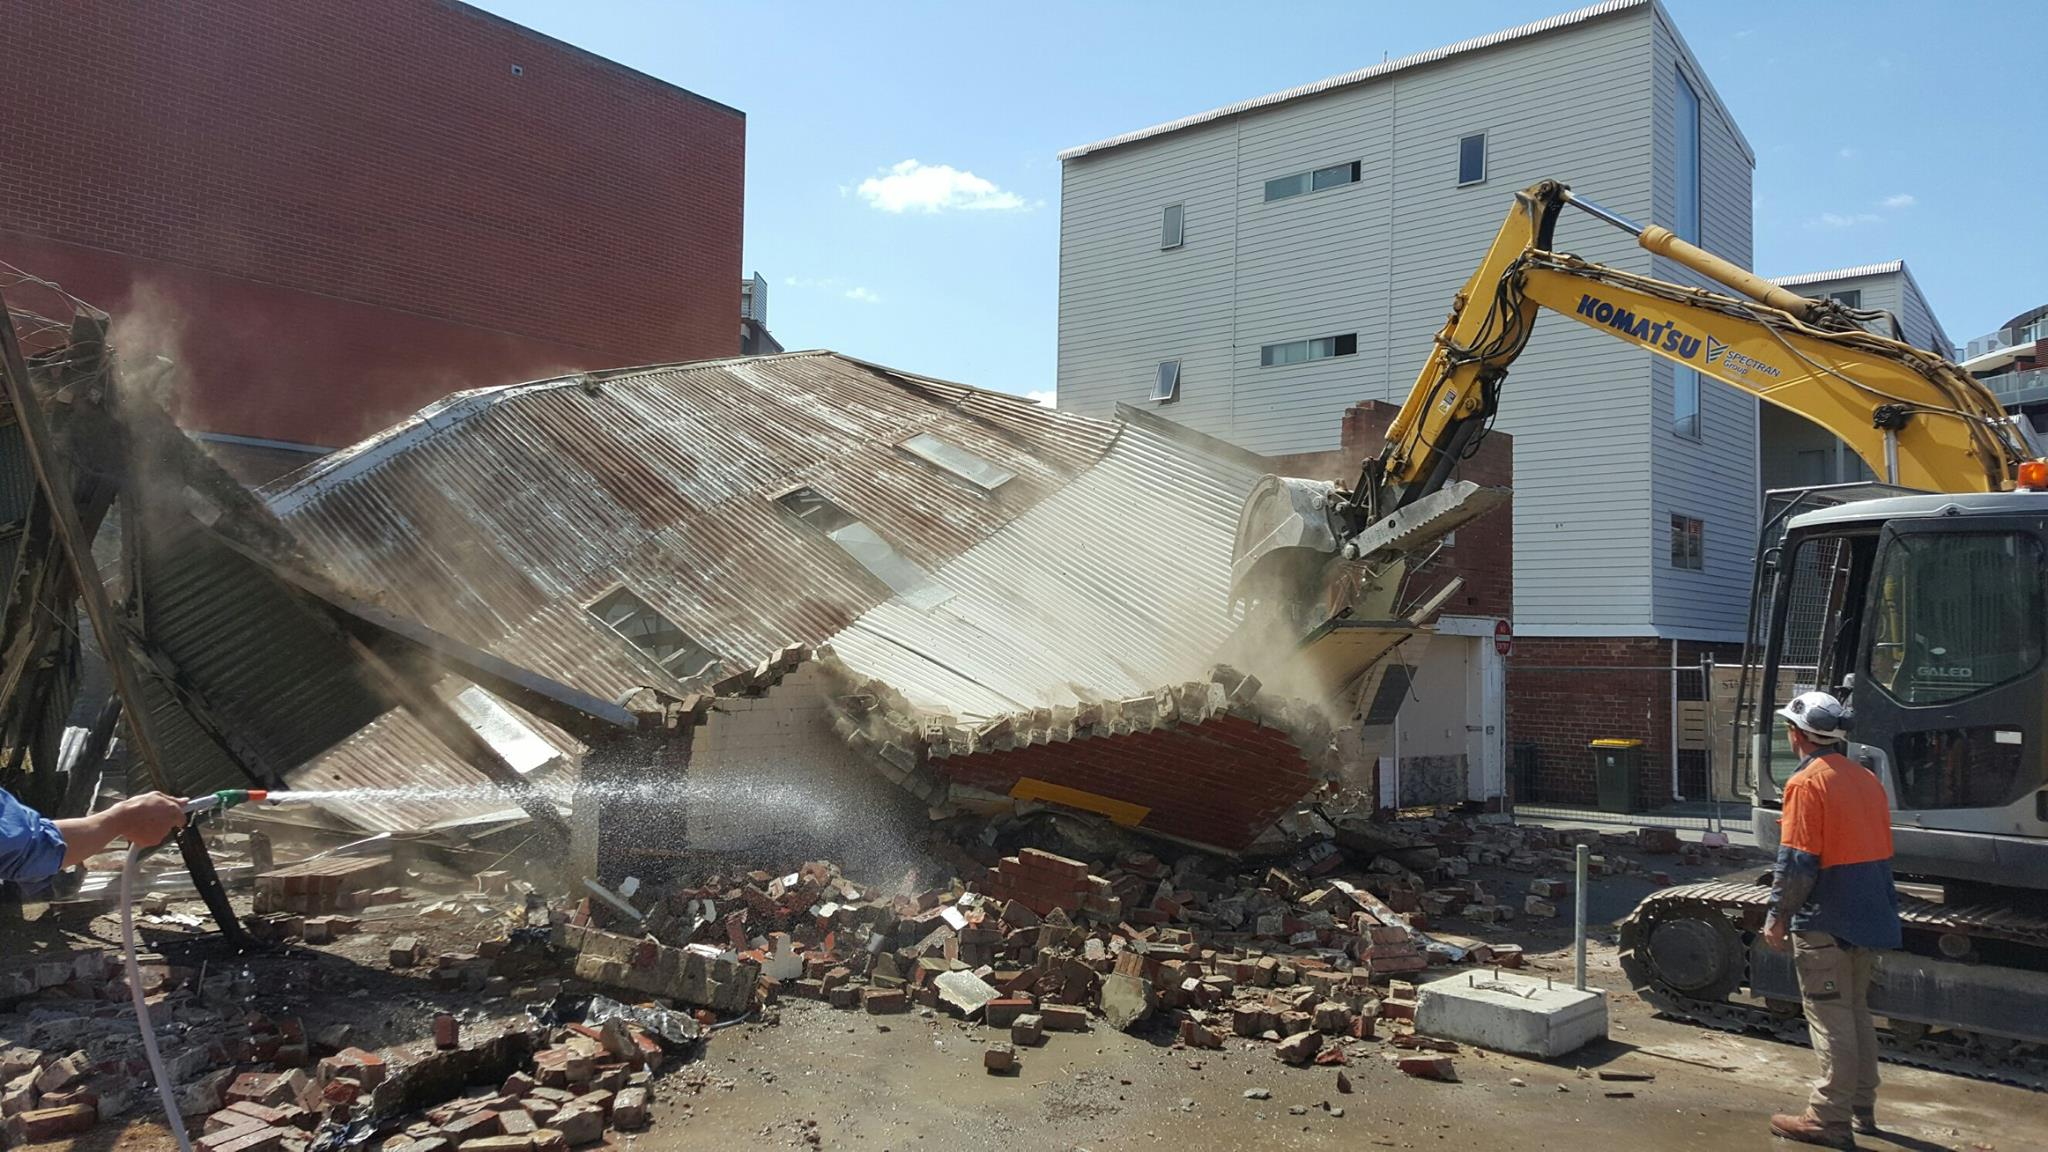 Spectran Group Building Demolition Hobart